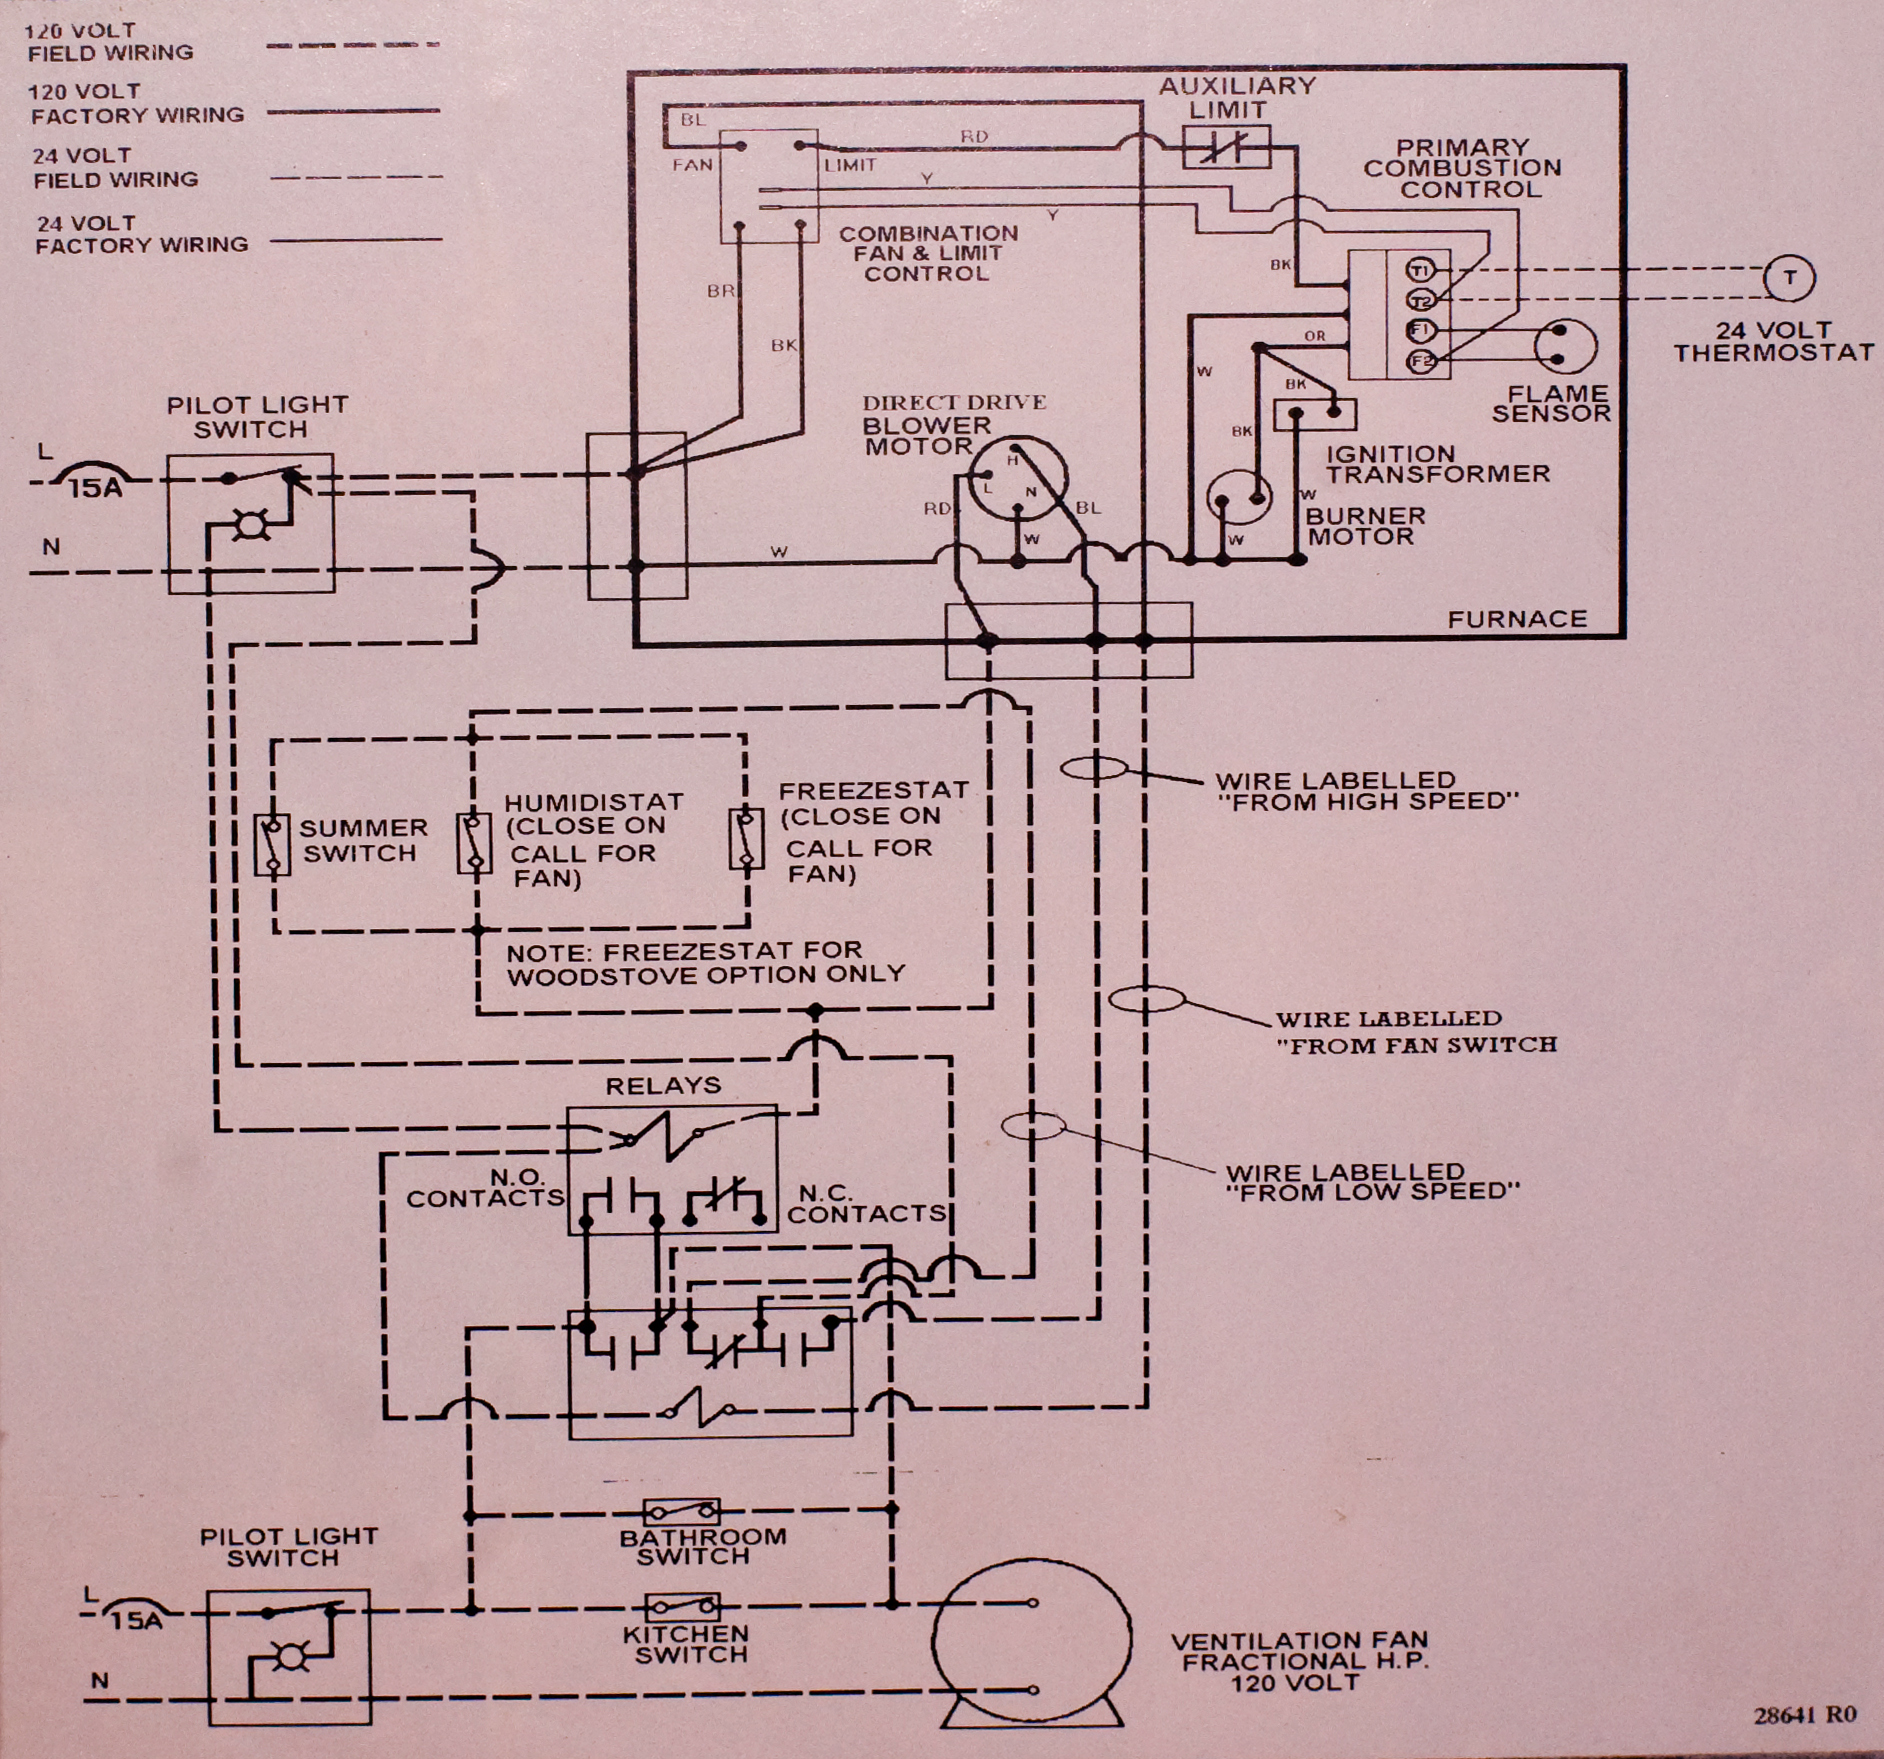 Gb 8805 Atwood Rv Thermostat Wiring Diagram Furthermore Atwood Rv Water Heater Wiring Diagram